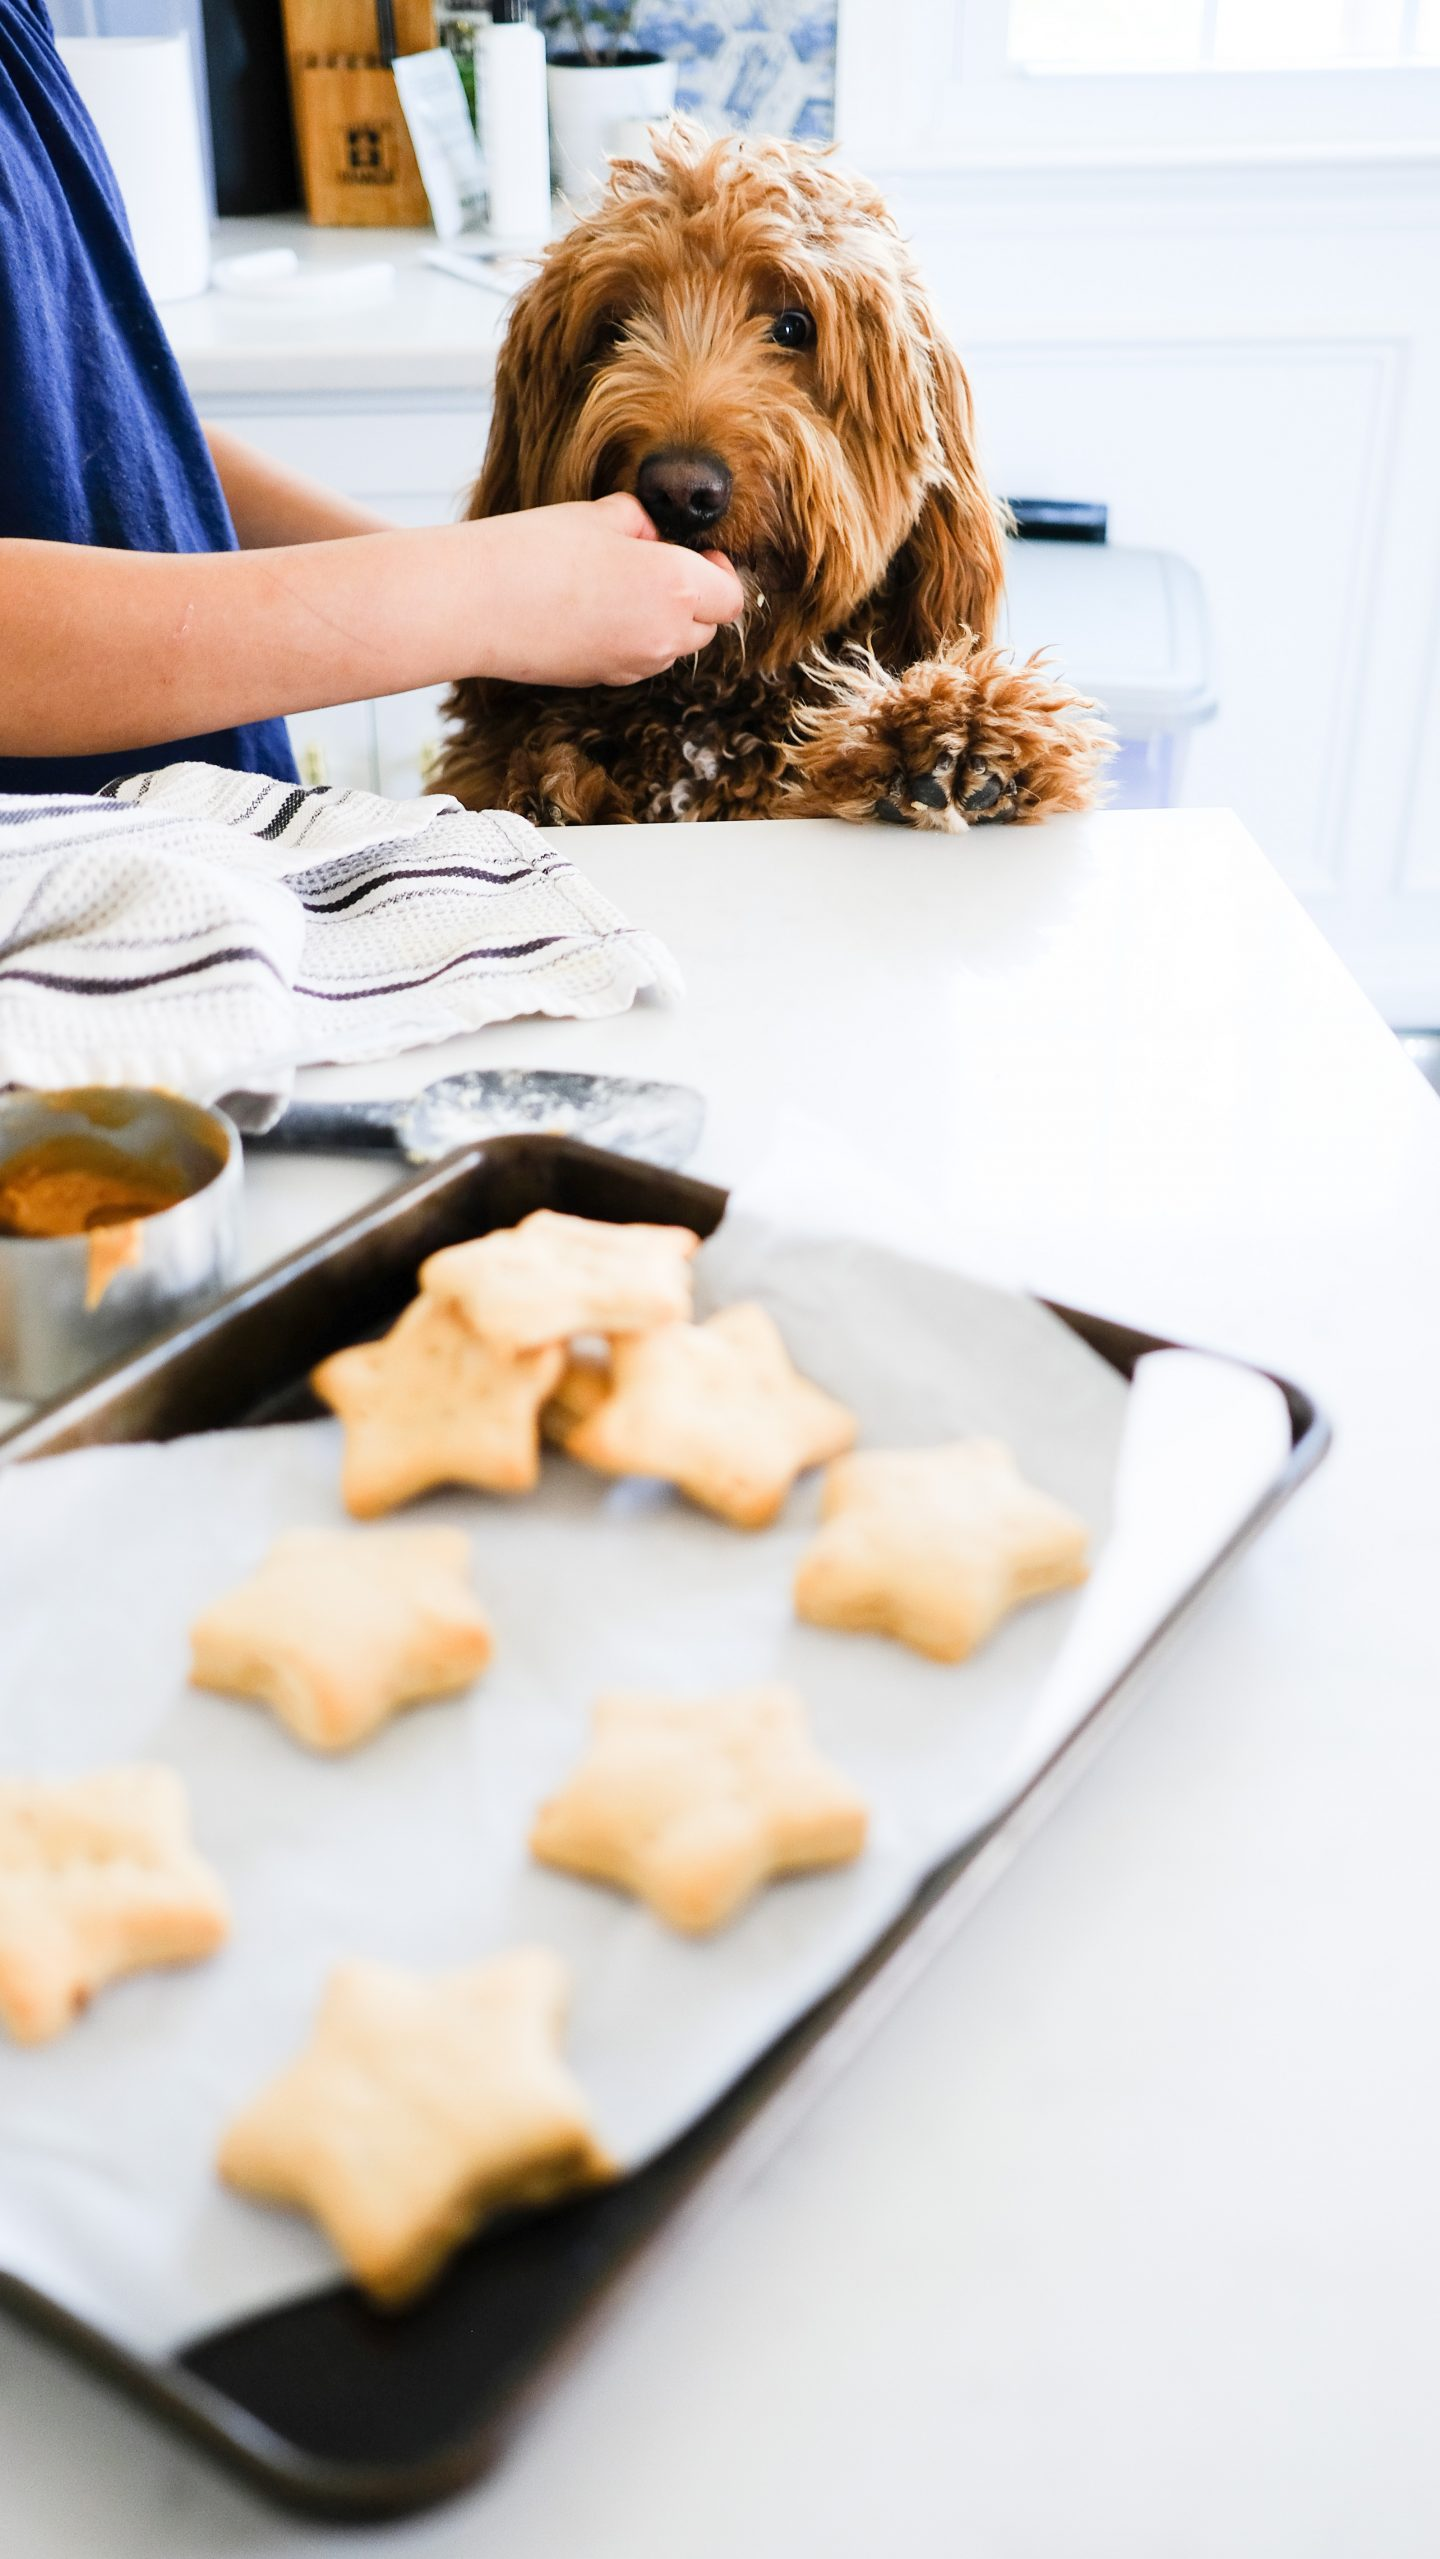 Chocolate and Lace shares her recipe for star shaped peanut butter dog stars